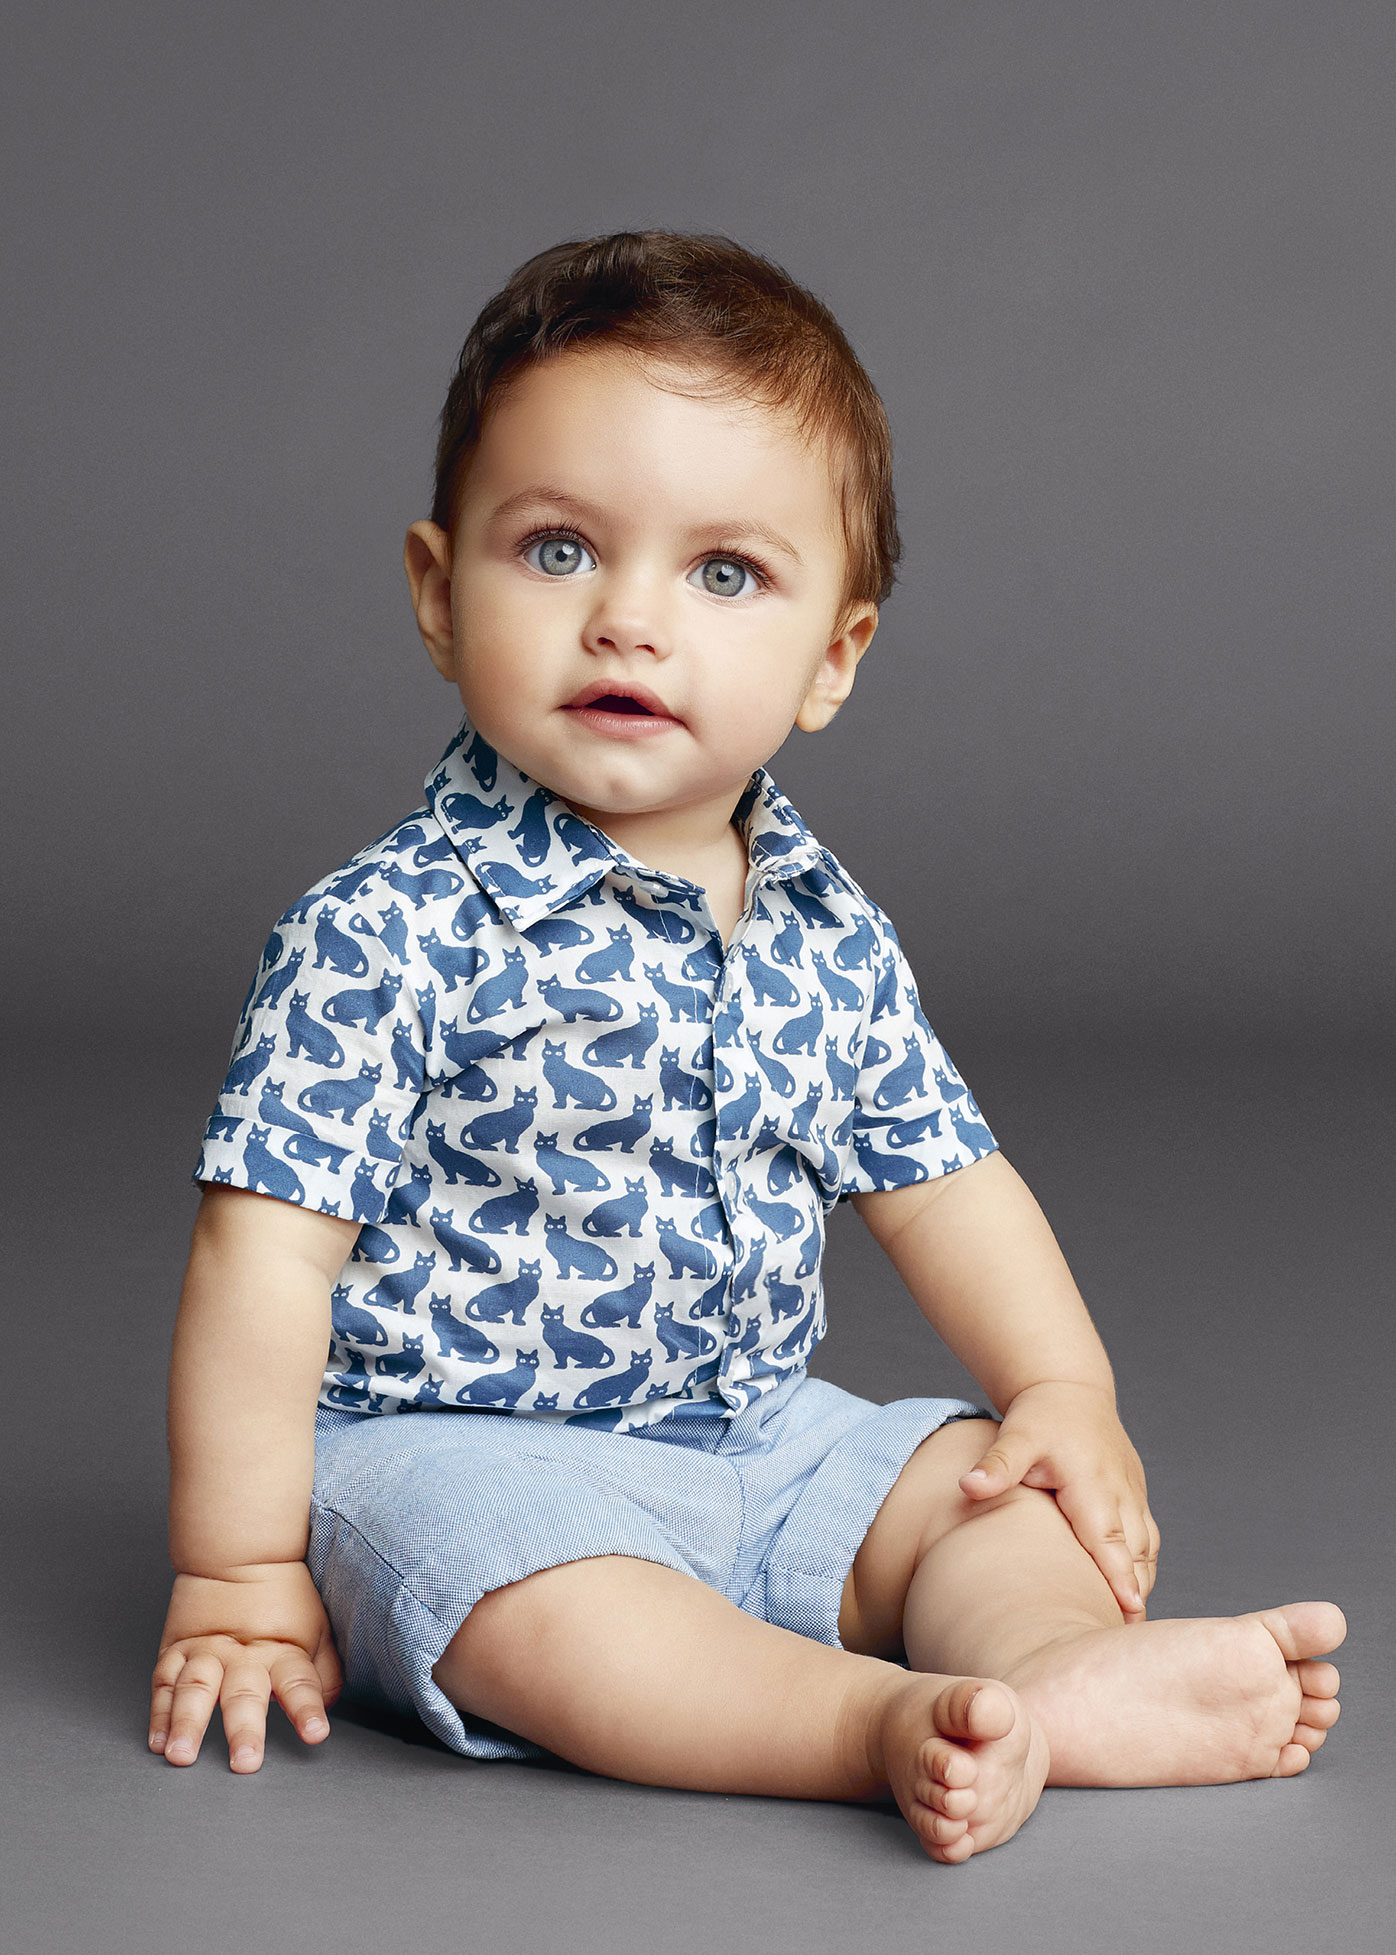 Dolce And Gabbana Baby Clothes Newest and Cutest Baby Clothing